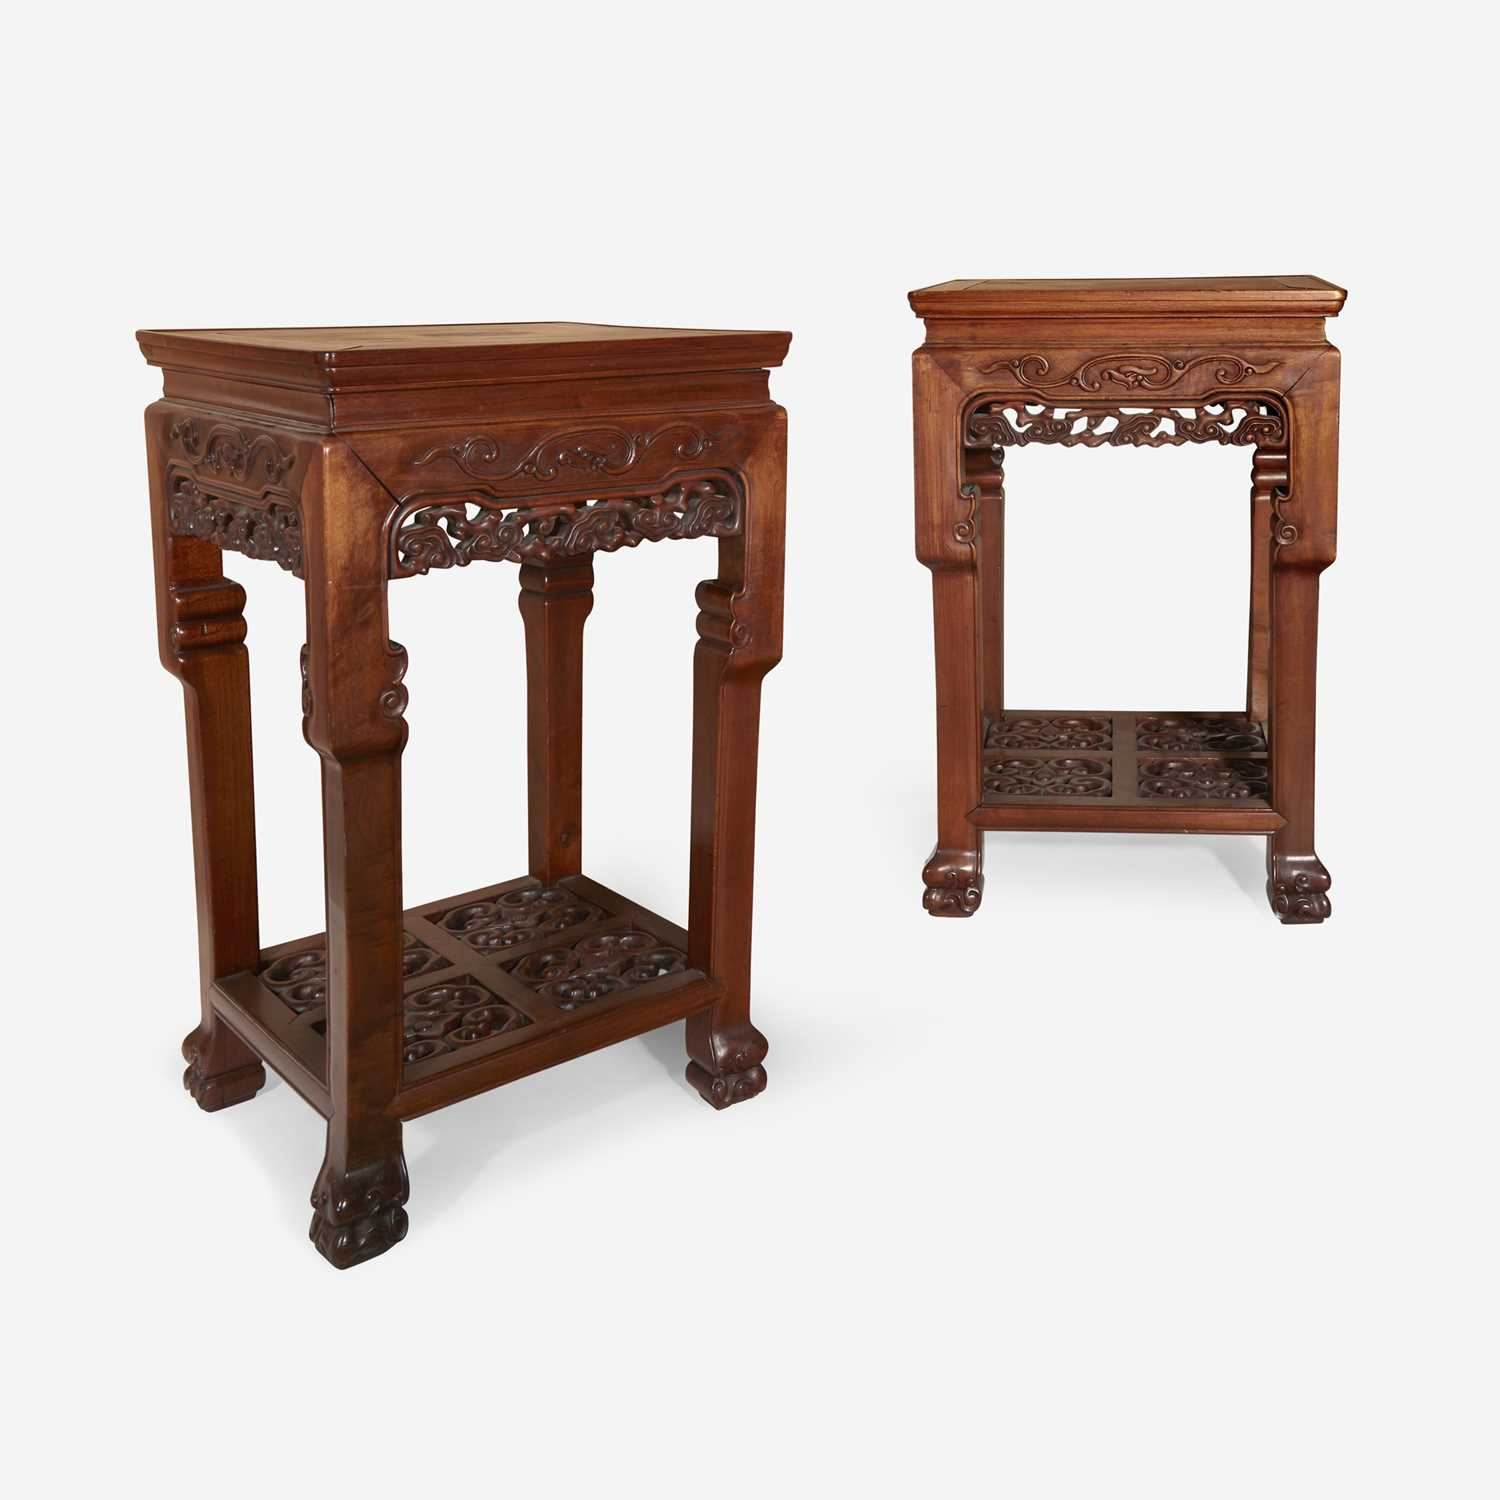 Lot 76 - A pair of Chinese hardwood square side tables